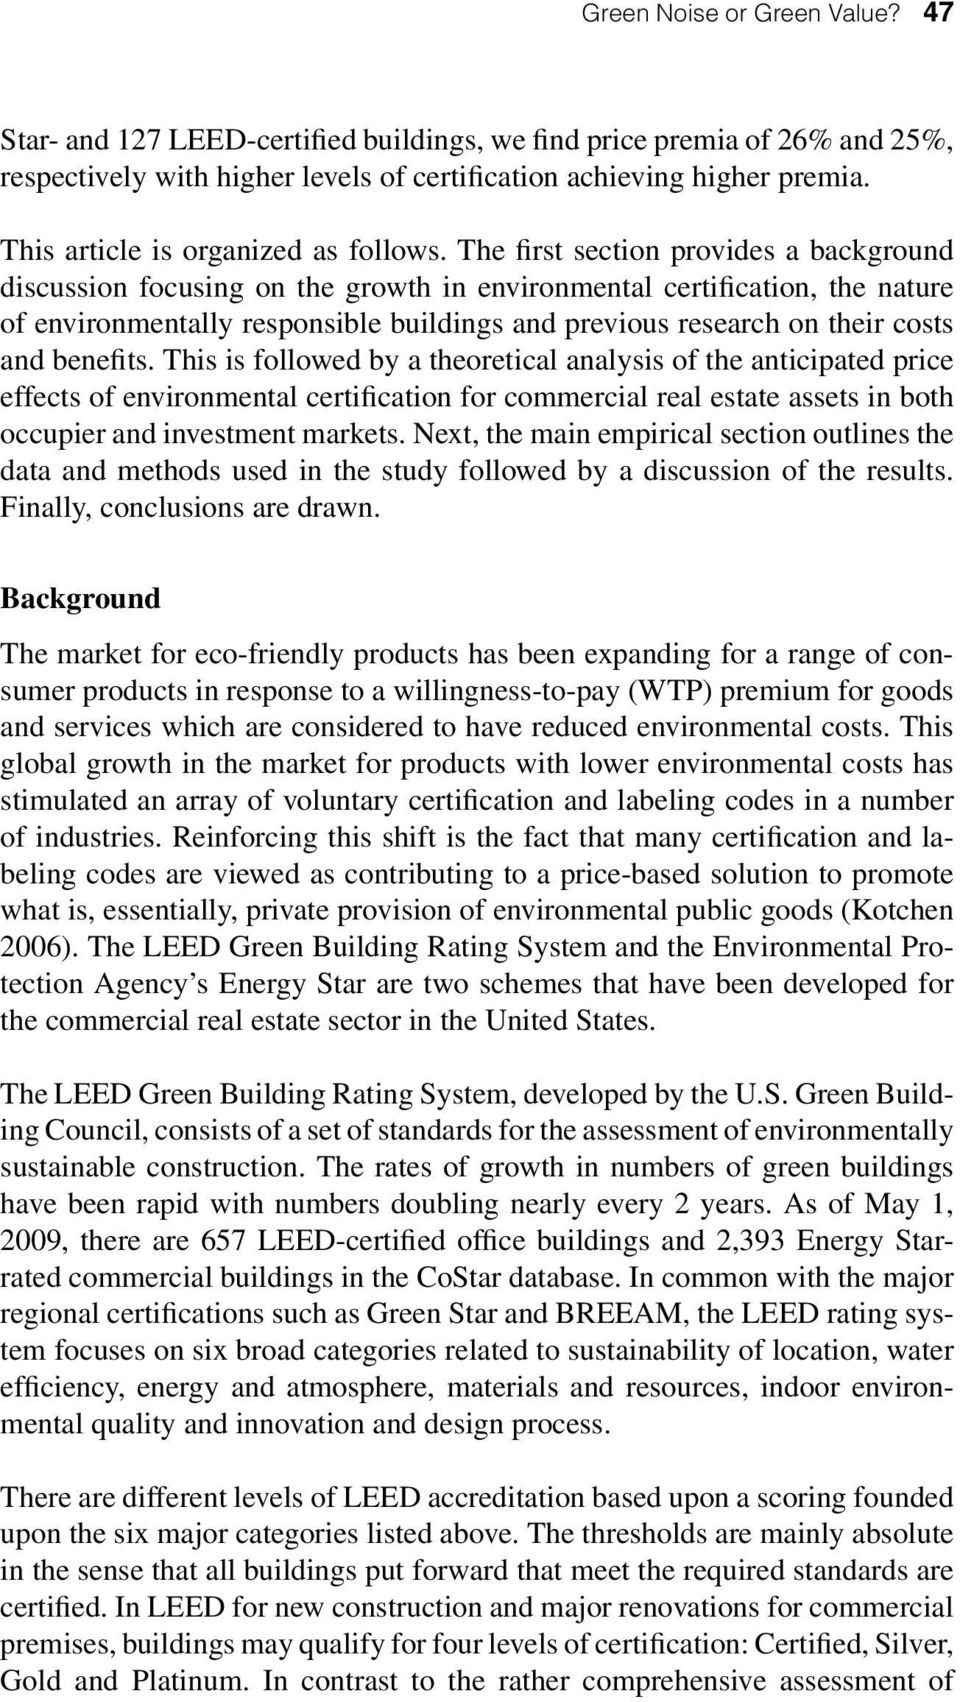 The first section provides a background discussion focusing on the growth in environmental certification, the nature of environmentally responsible buildings and previous research on their costs and